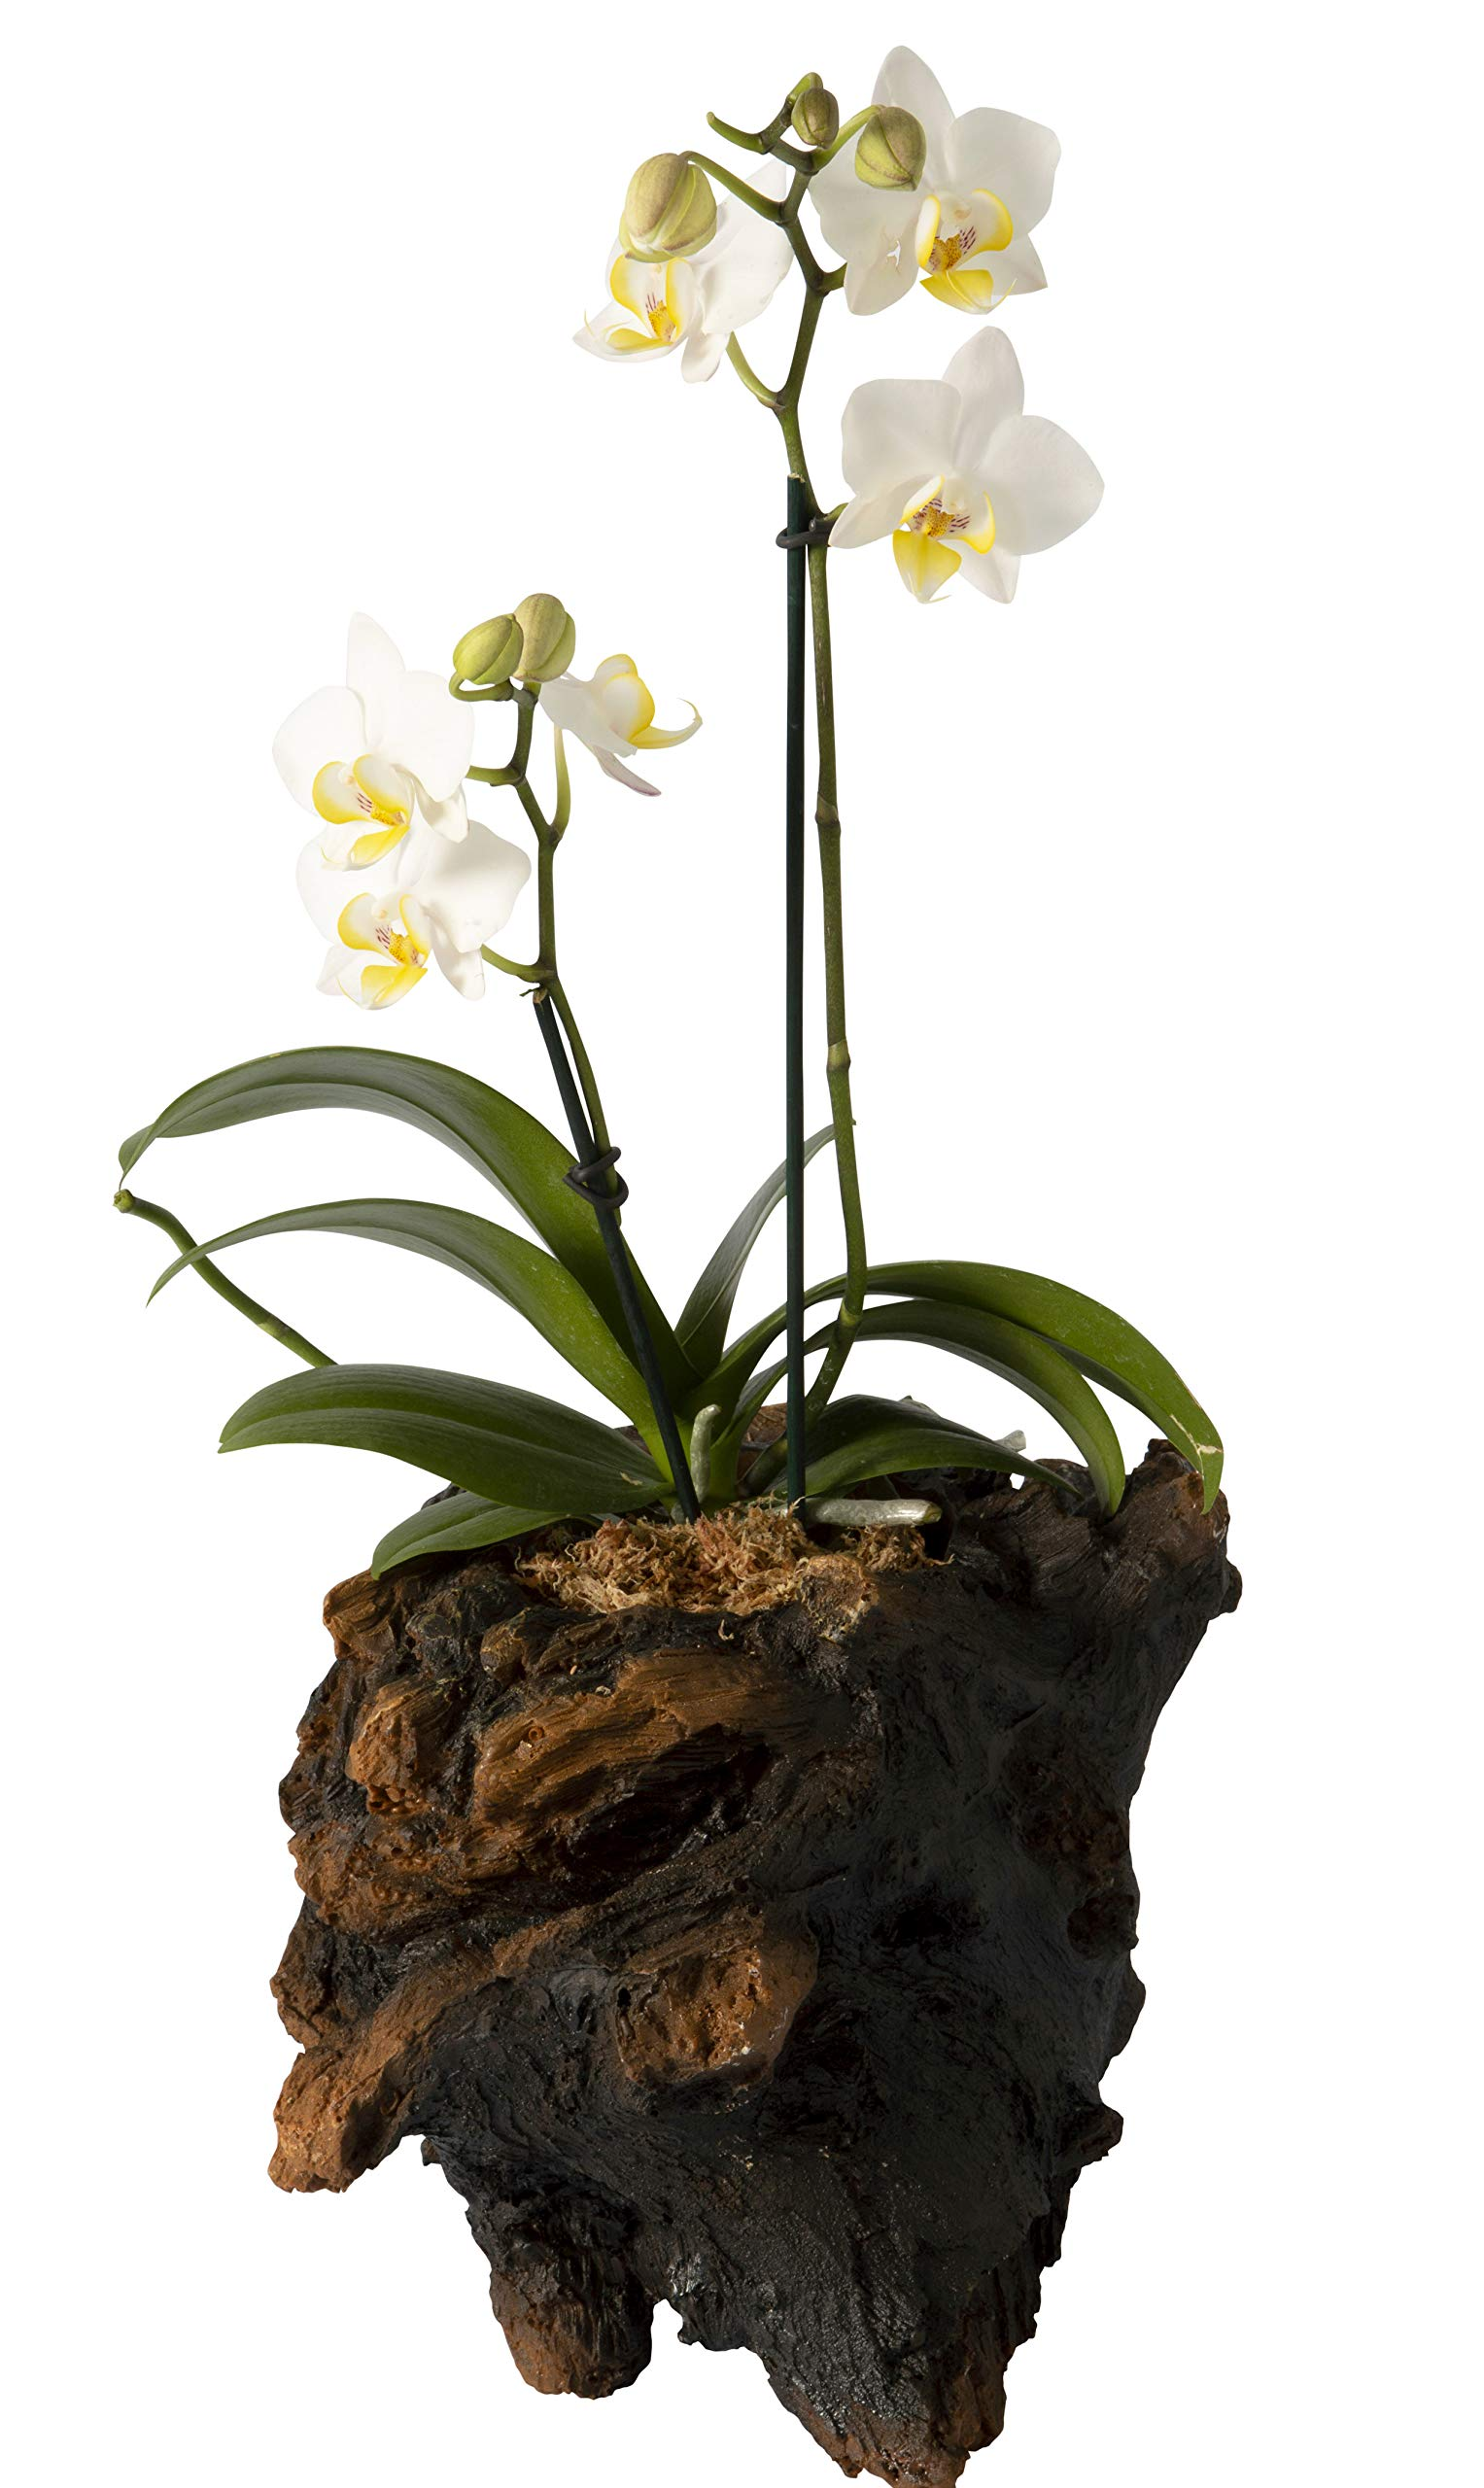 Color Orchids Live Blooming Double Stem Phalaenopsis Orchid Plant in Ceramic Pot, 15'' - 20'' Tall Single, White